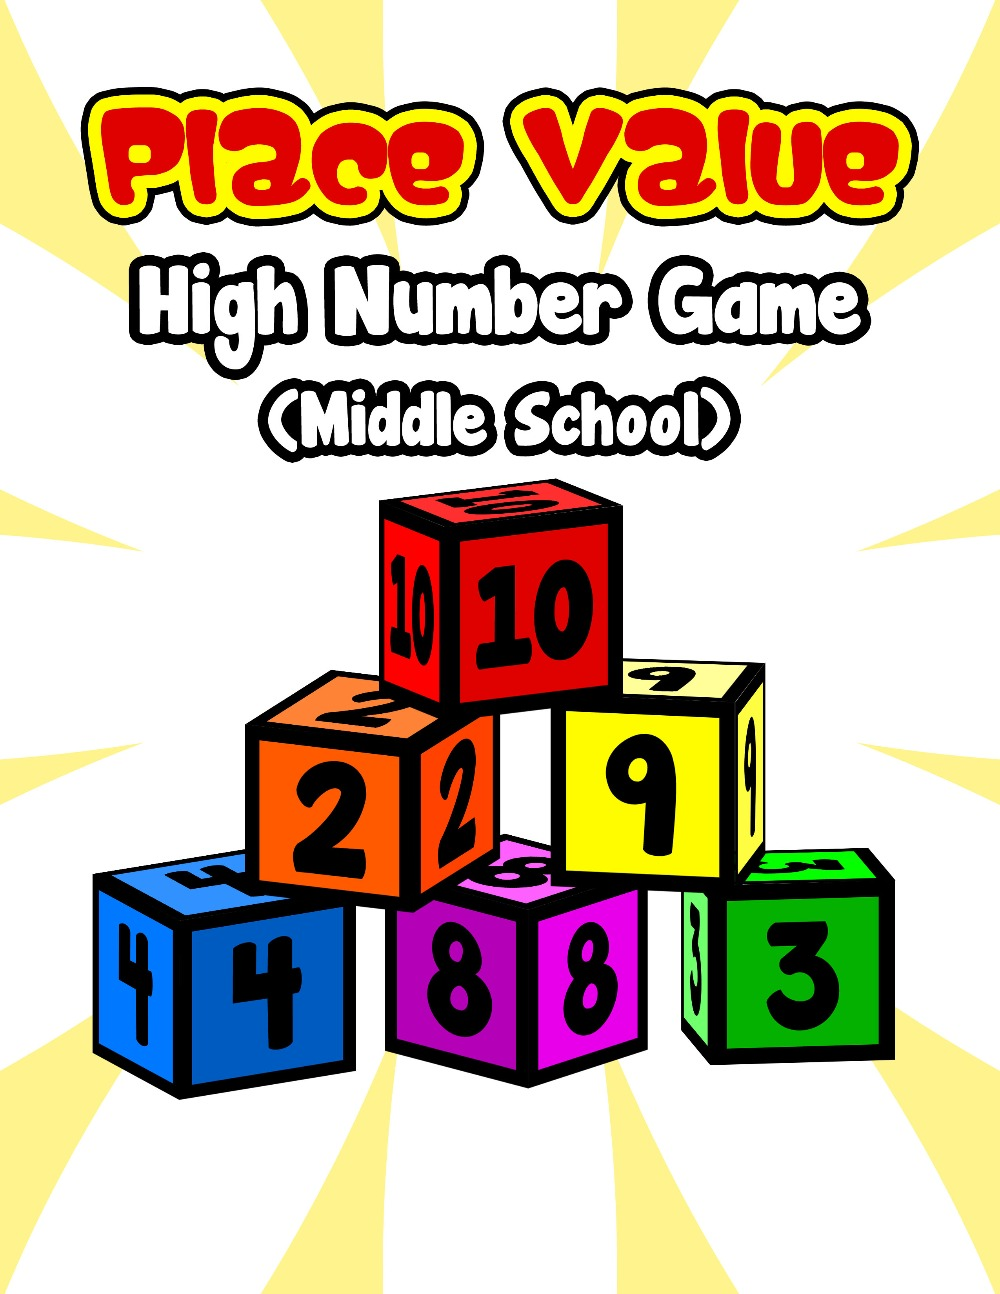 Place Value High Number Game (Middle School)